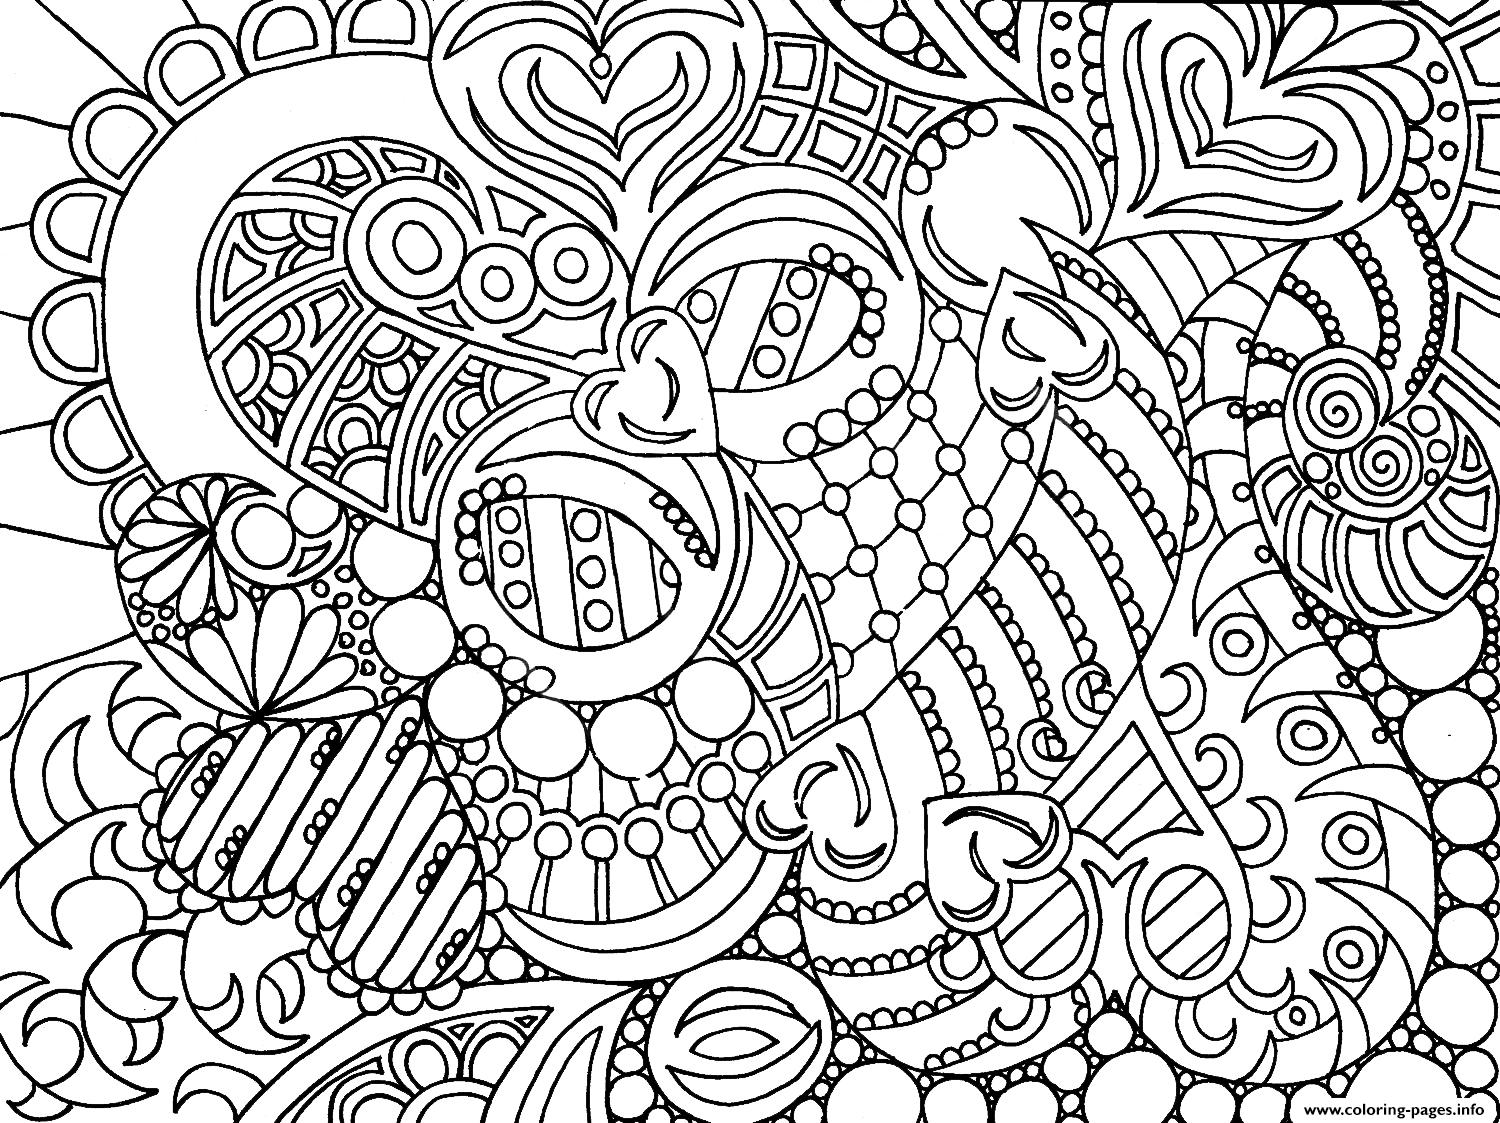 Authoritative Sexy coloring pages for adults understand you